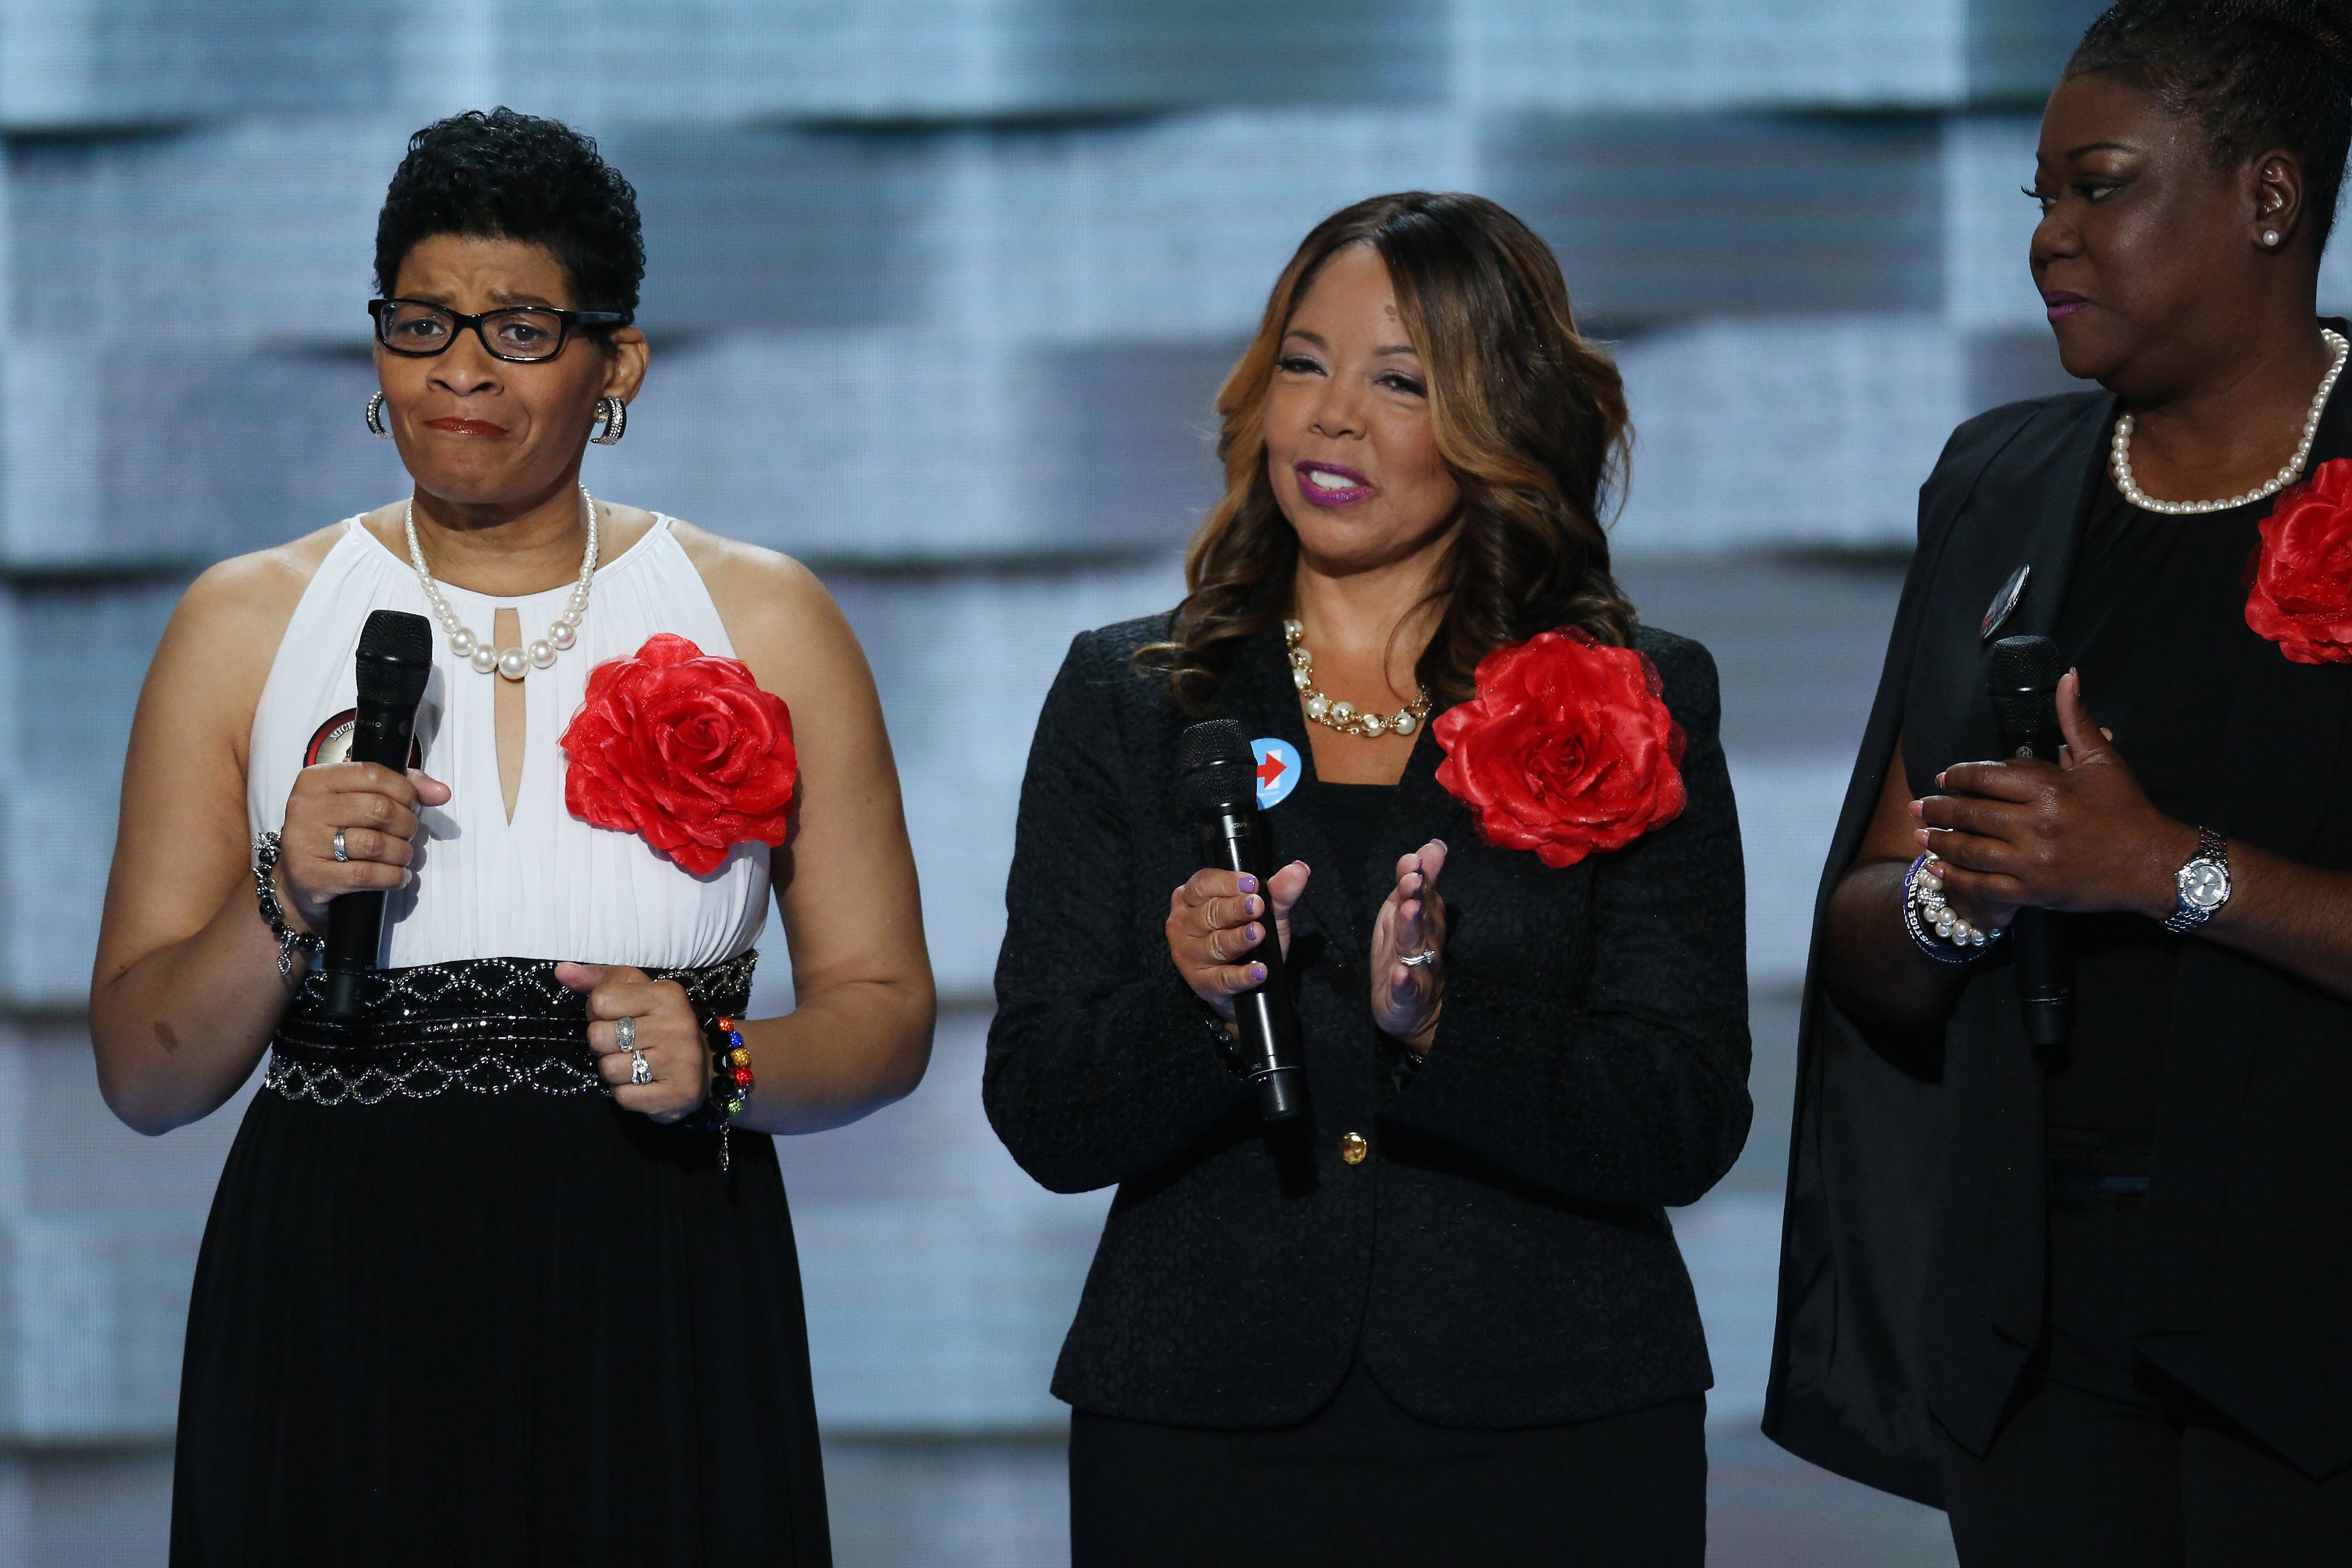 Geneva Reed-Veal left, and other members of Mothers of the Movement stand on stage during the Democratic National Convention in Philadelphia on Tuesday. Democrats began their presidential nominating convention Monday with a struggle to fully unite the party, following a dramatic day of internal squabbling and protests.